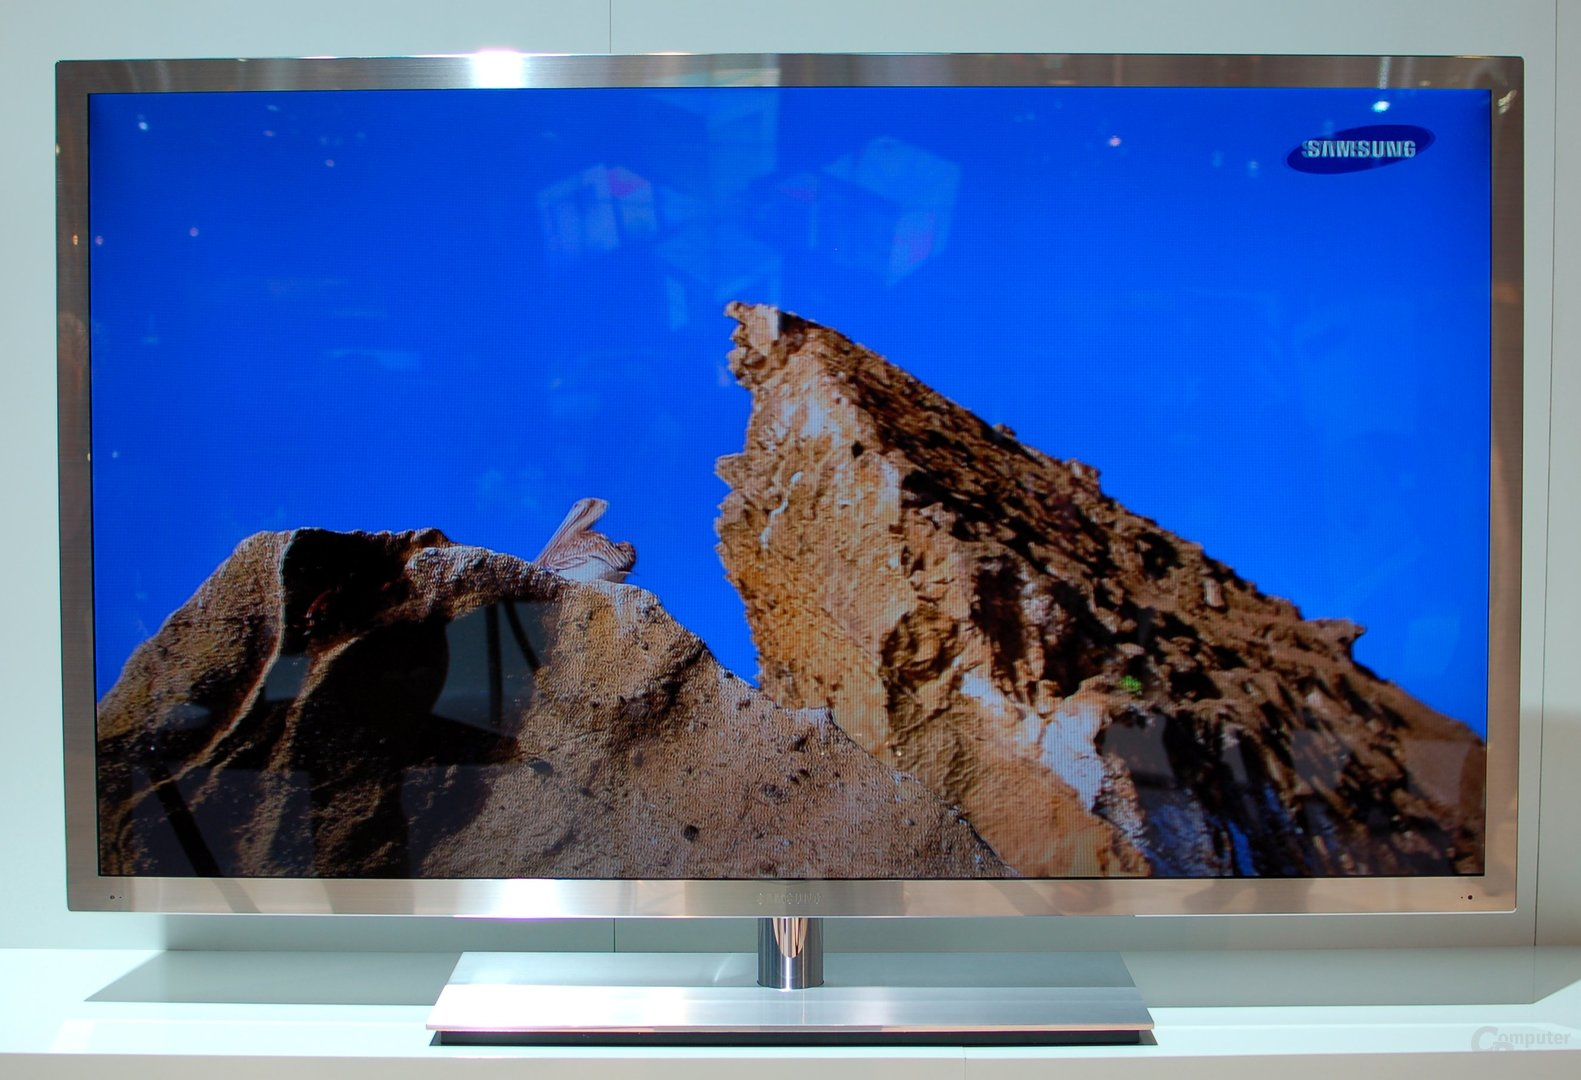 75 Zoll Full-HD 3D LED TV